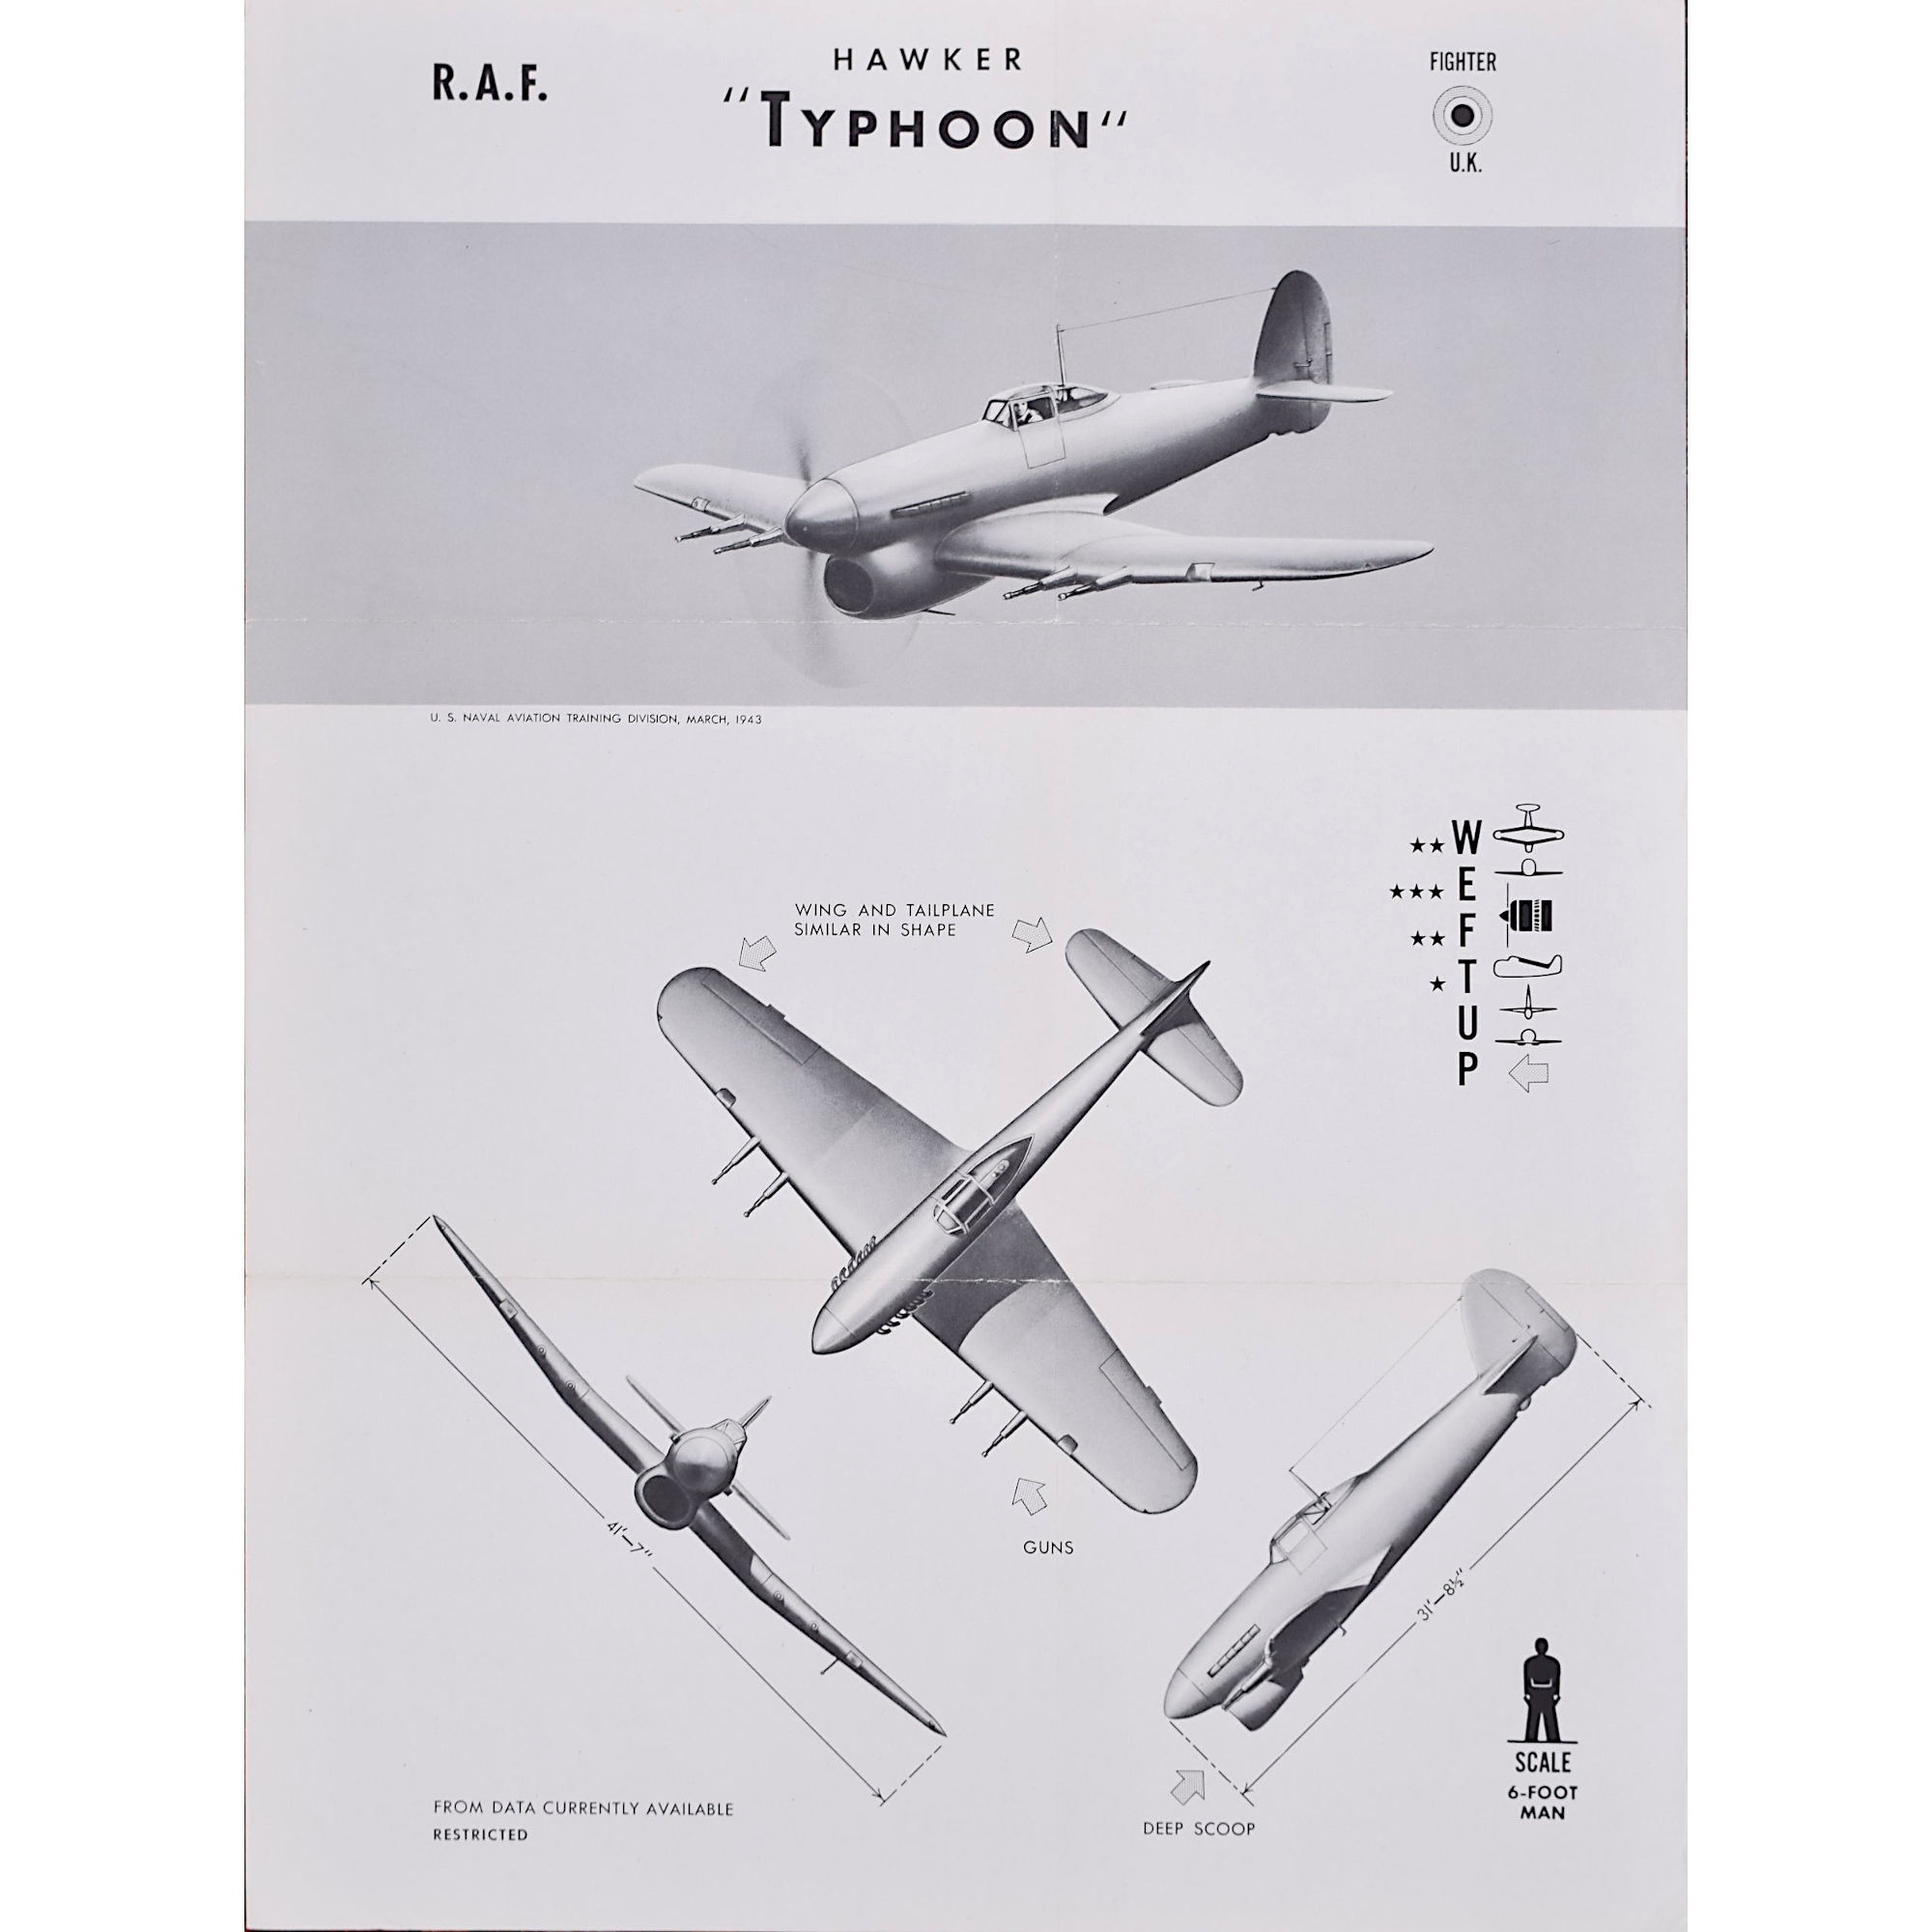 RAF Hawker Typhoon original WW2 aircraft recognition poster